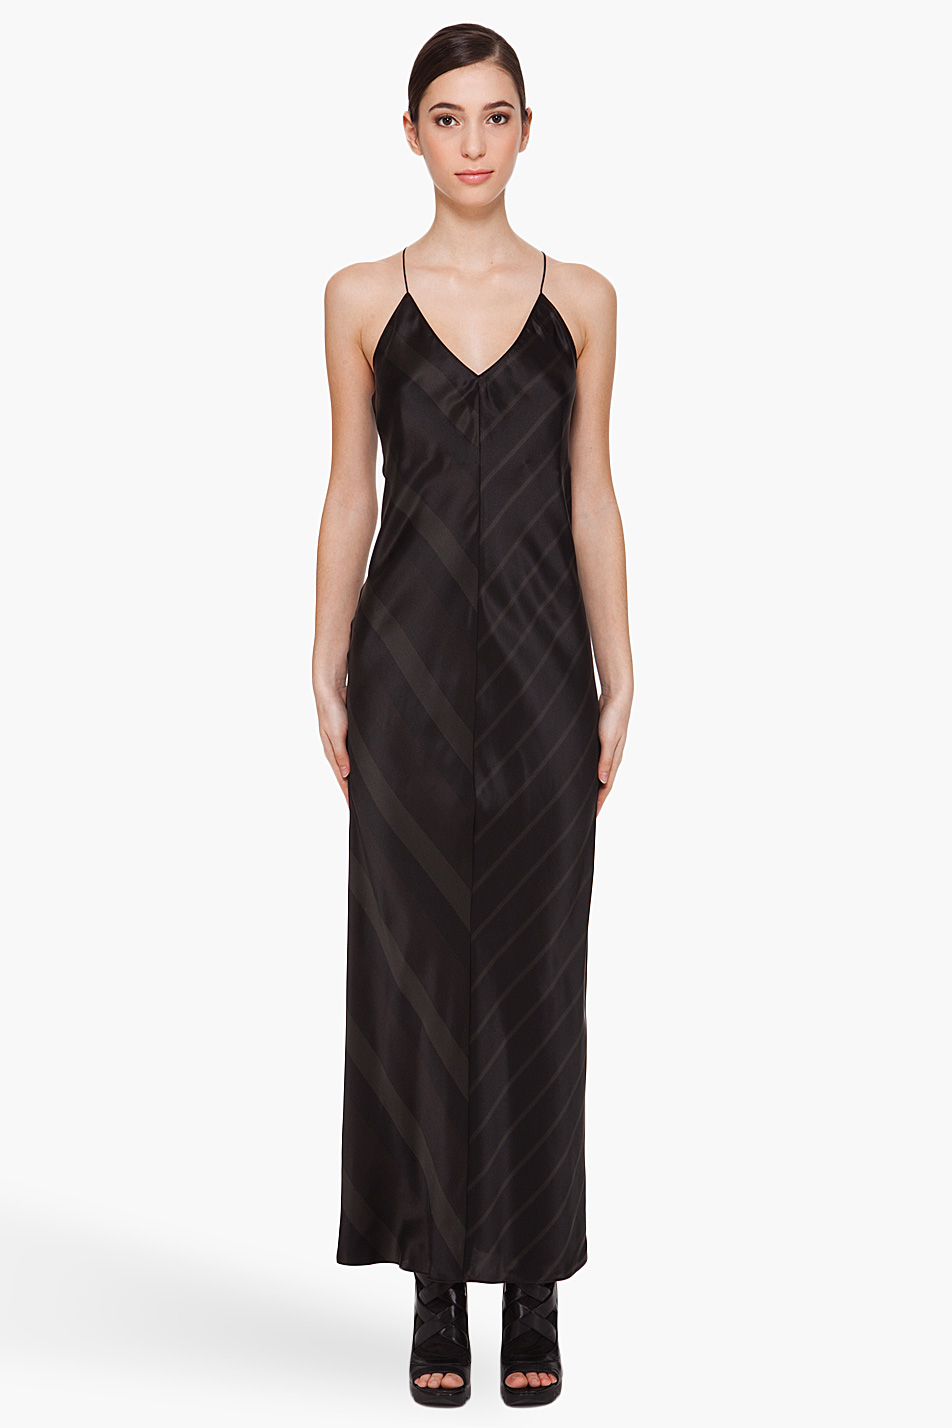 T by alexander wang Striped Silk Slip Dress in Black | Lyst